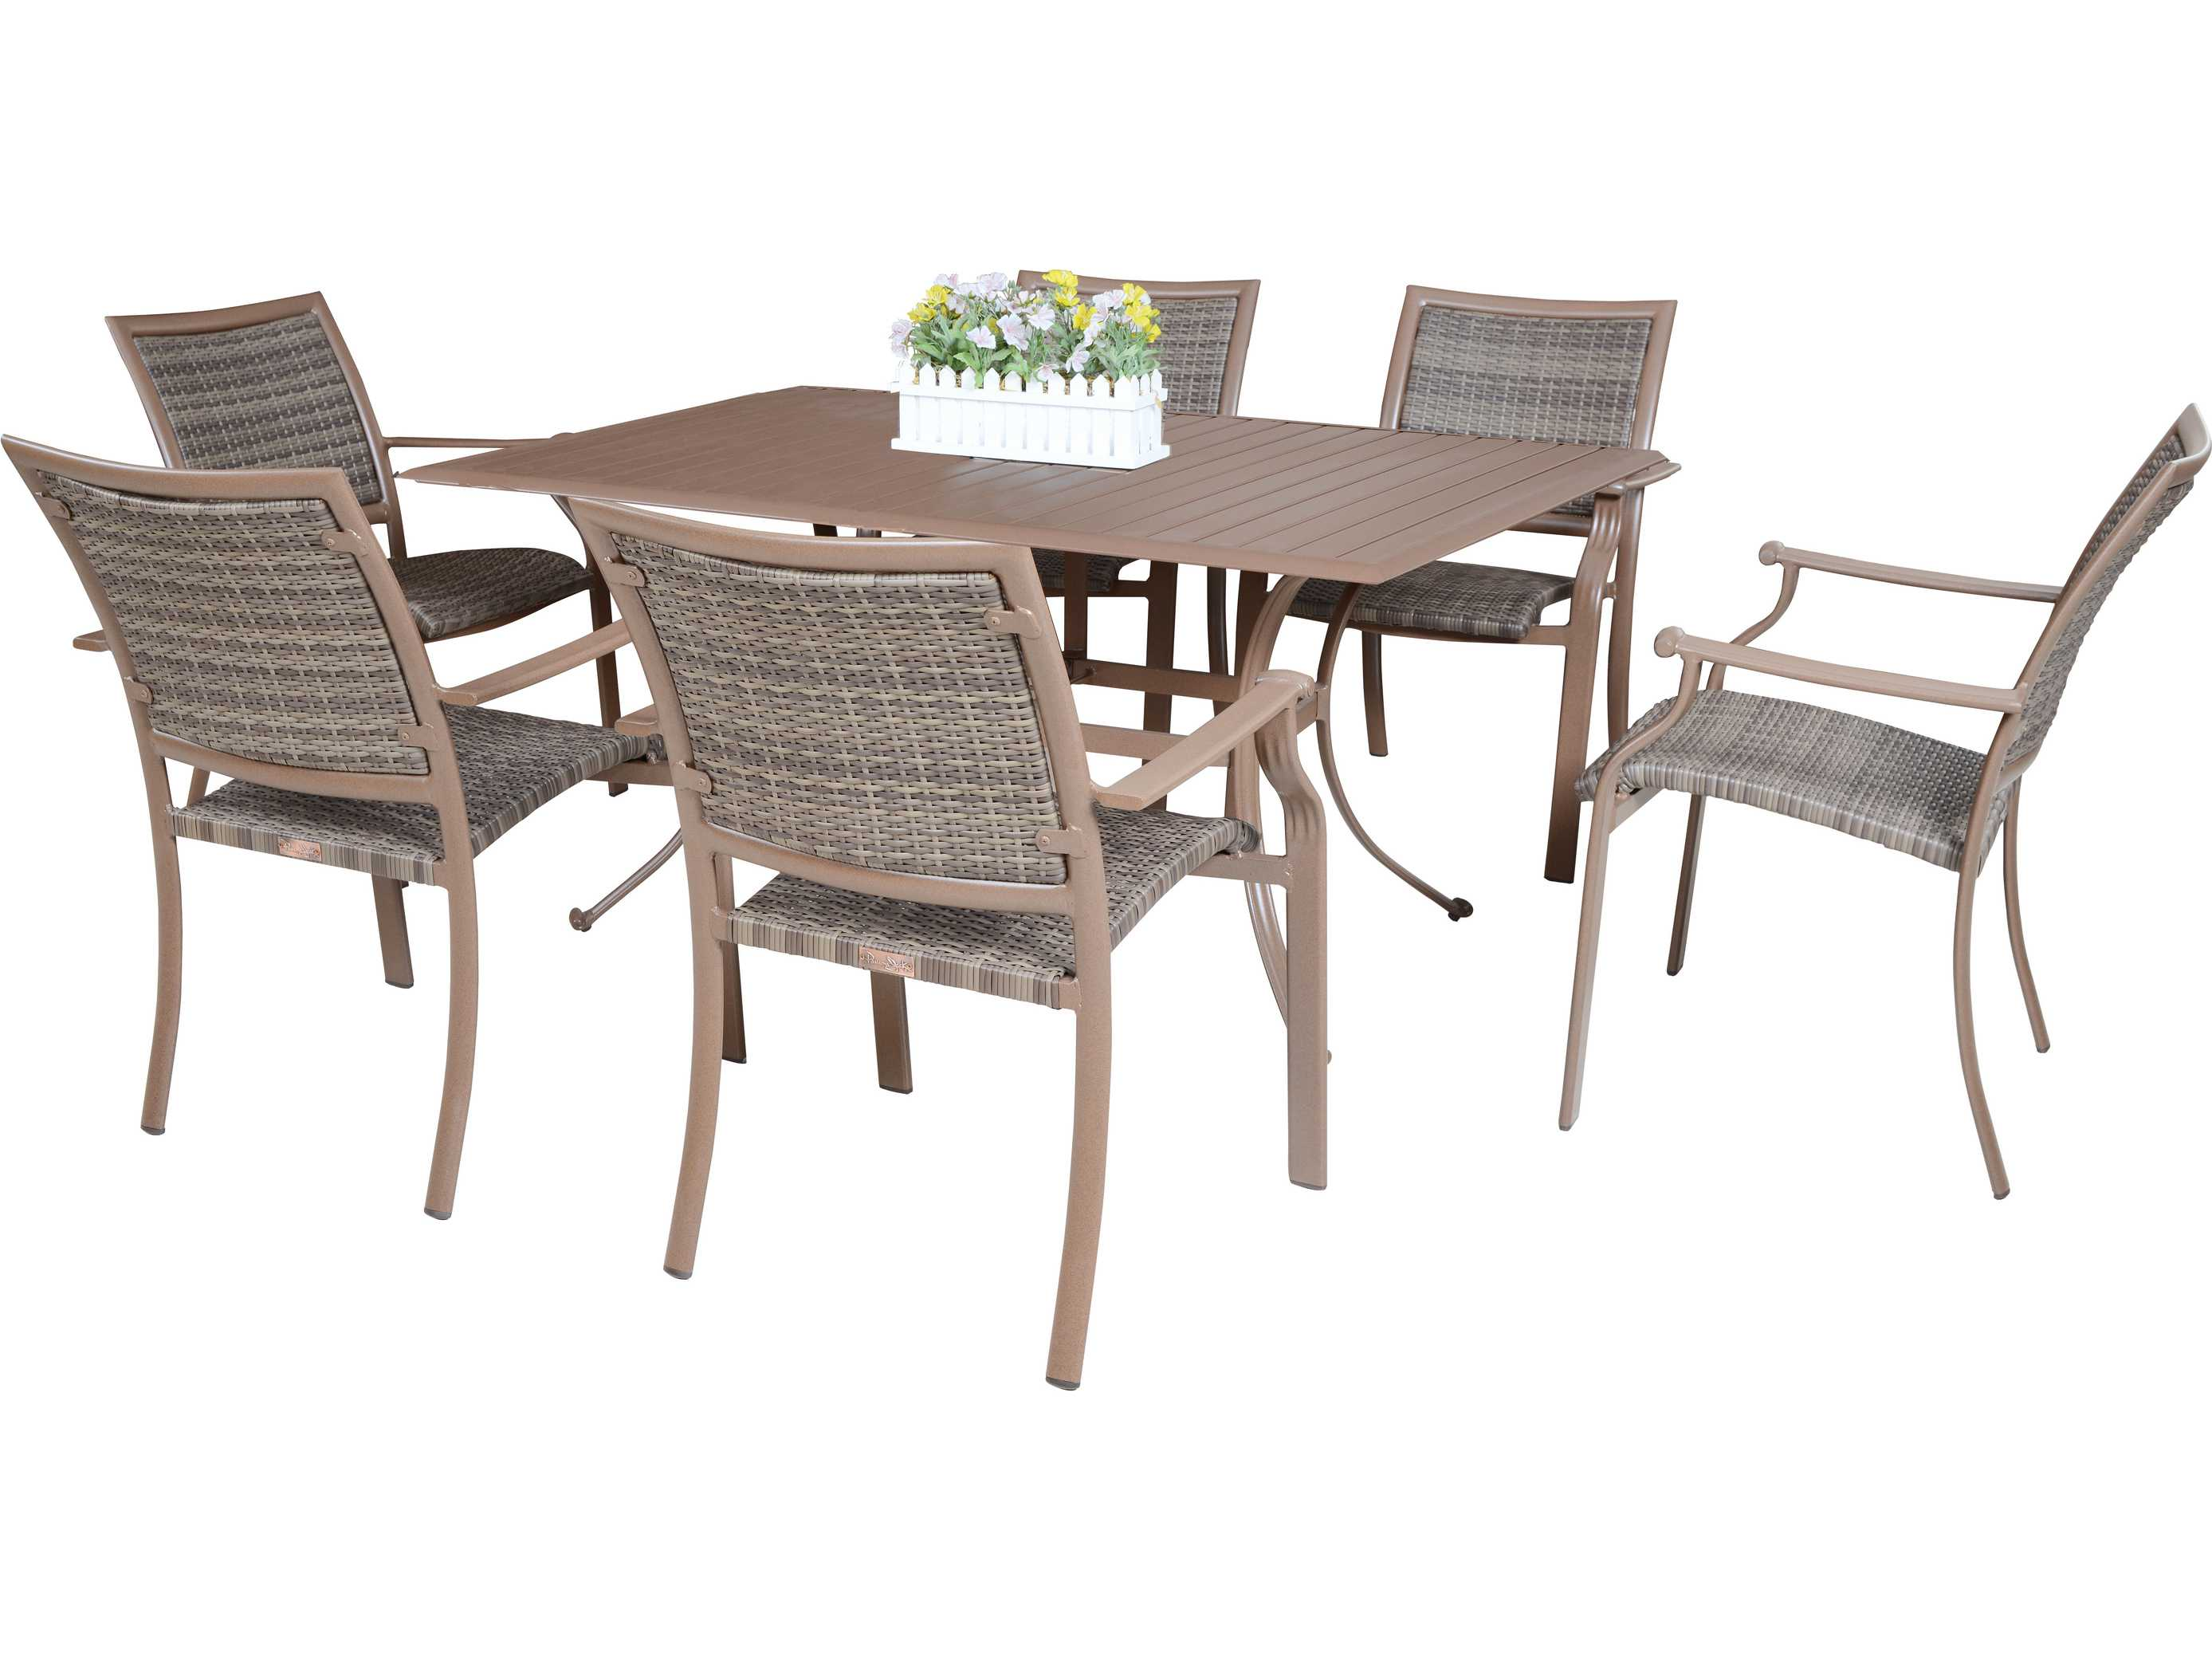 Panama Jack Island Cove Wicker Seven Piece Dining Set